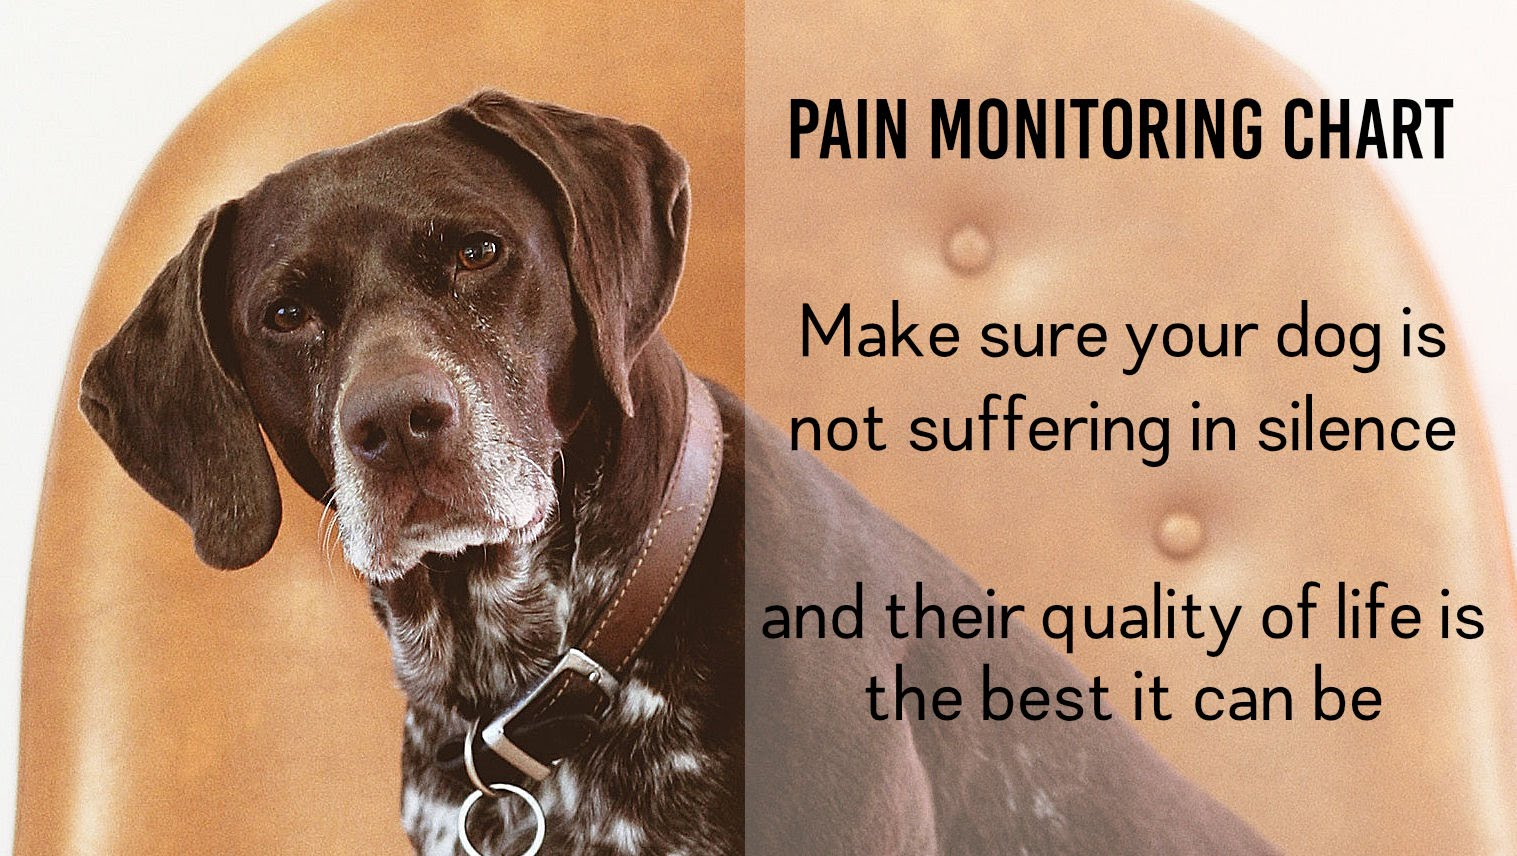 use the pain monitoring chart to make sure that the drug treatment your dog is on for arthritis is working